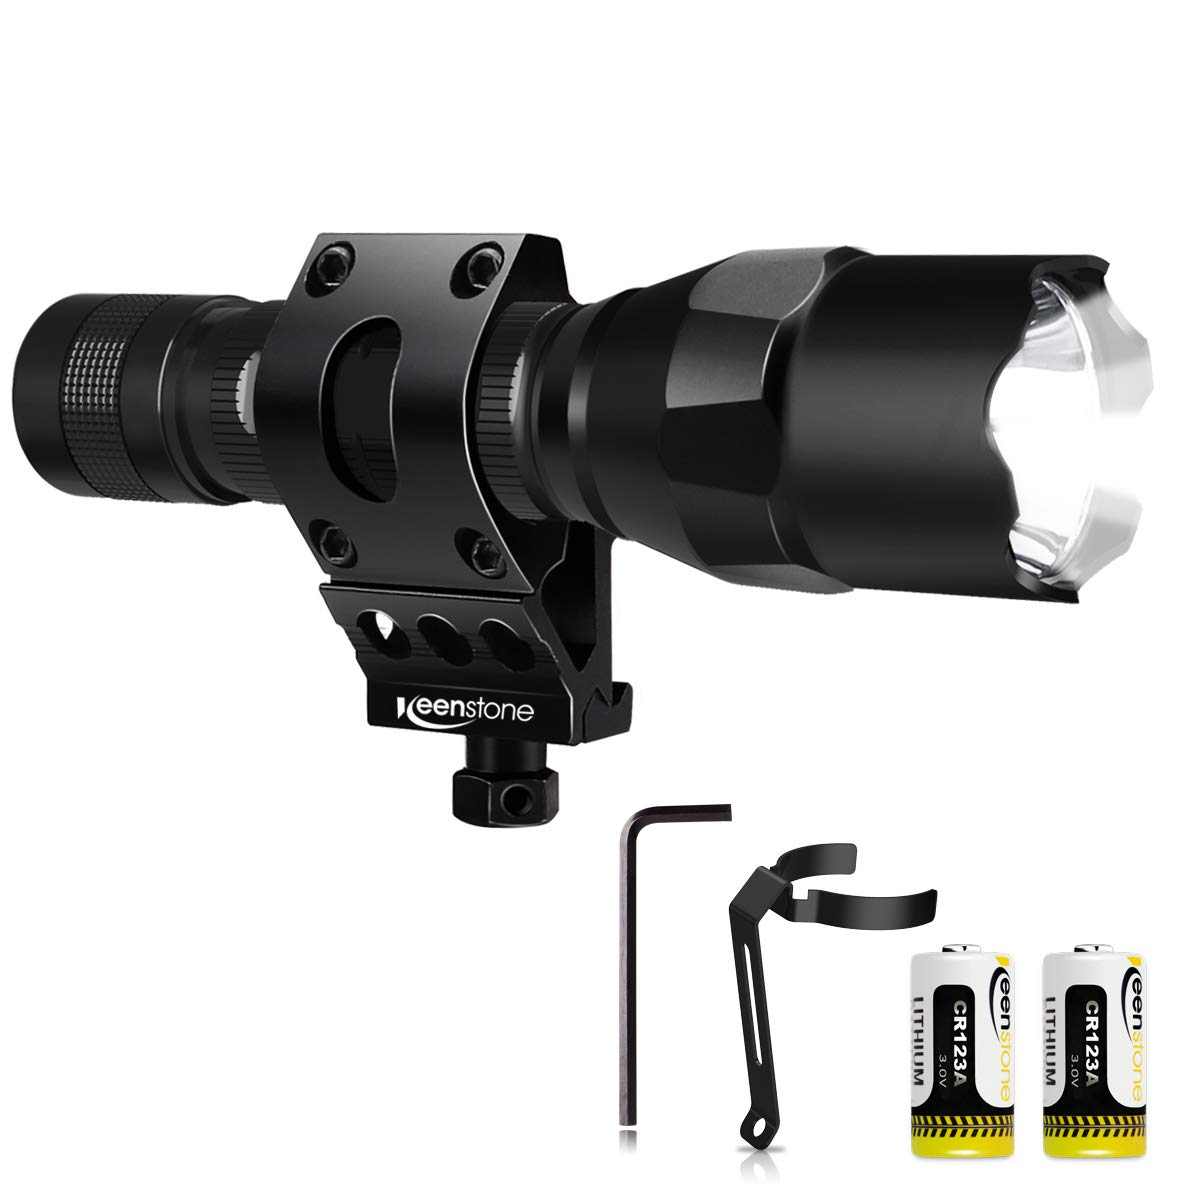 Tactical Flashlight with Picatinny Rail Mount, Keenstone 800 Lumen LED Light Waterproof Tactical Picatinny Flashlight for Home Use or Outdoor Hunting Camping Include with Batteries and Portable Clip